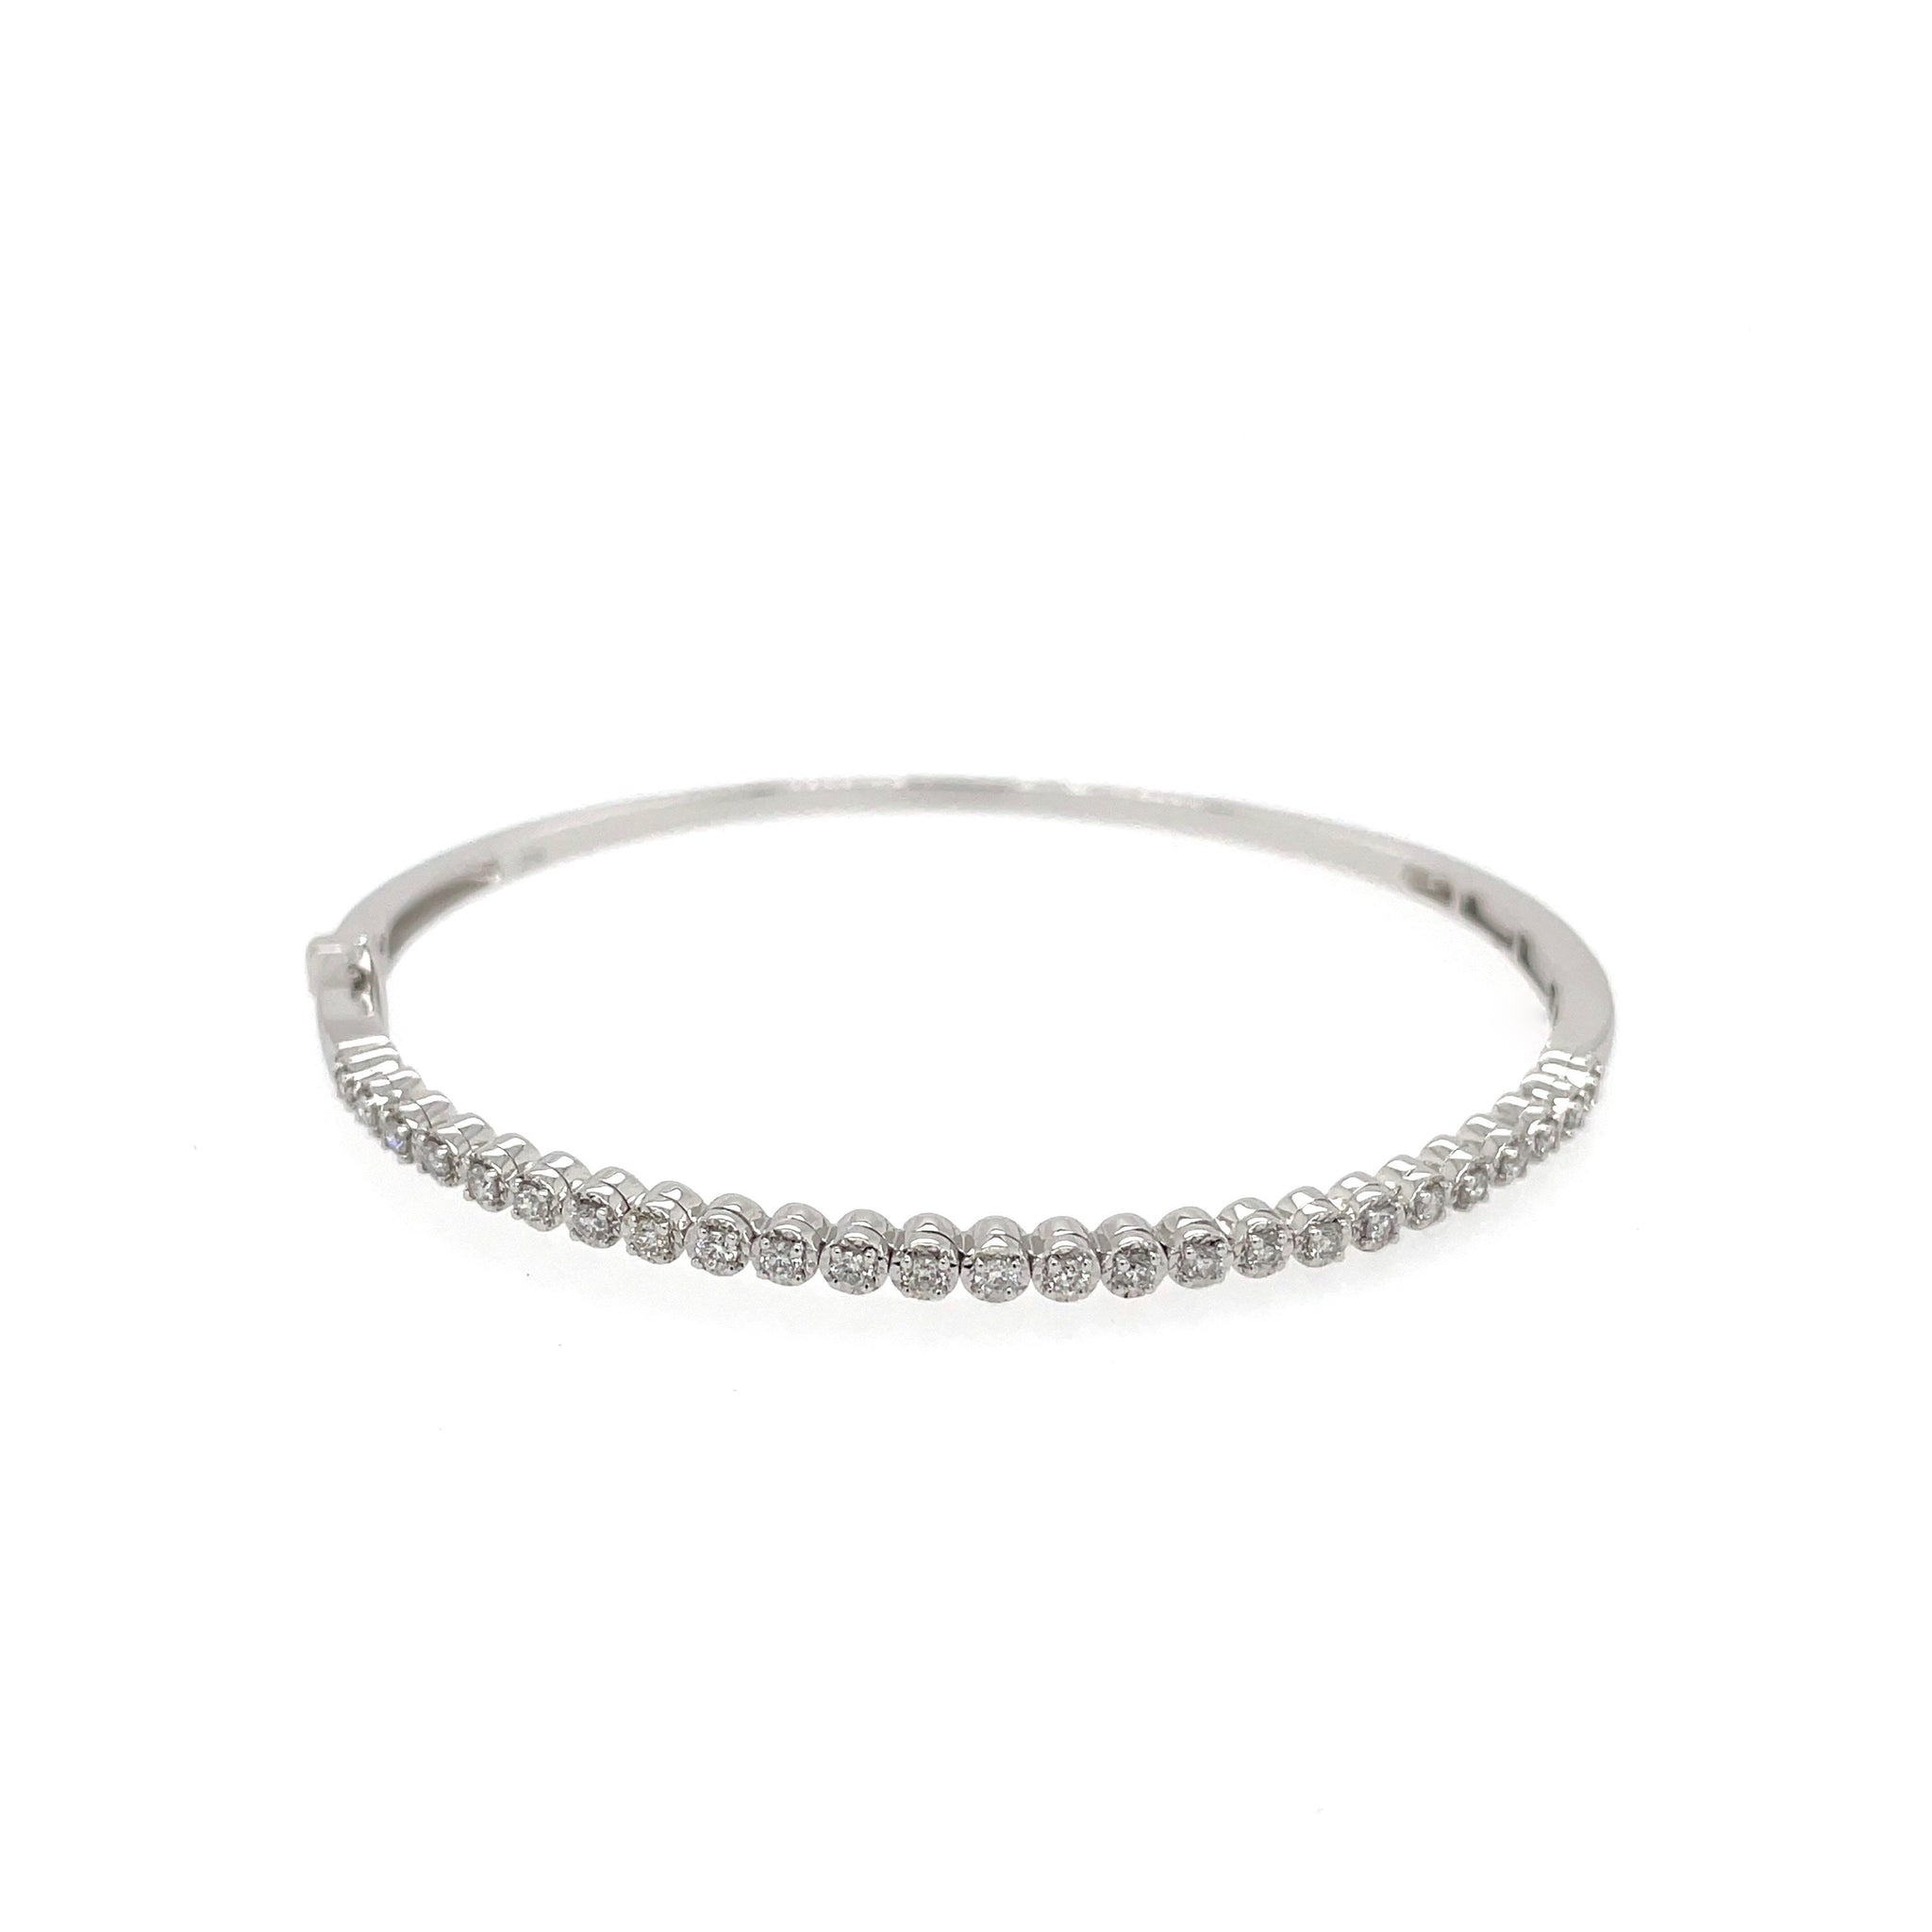 White Gold Diamond Bangle, with hinged opening for a perfect fit